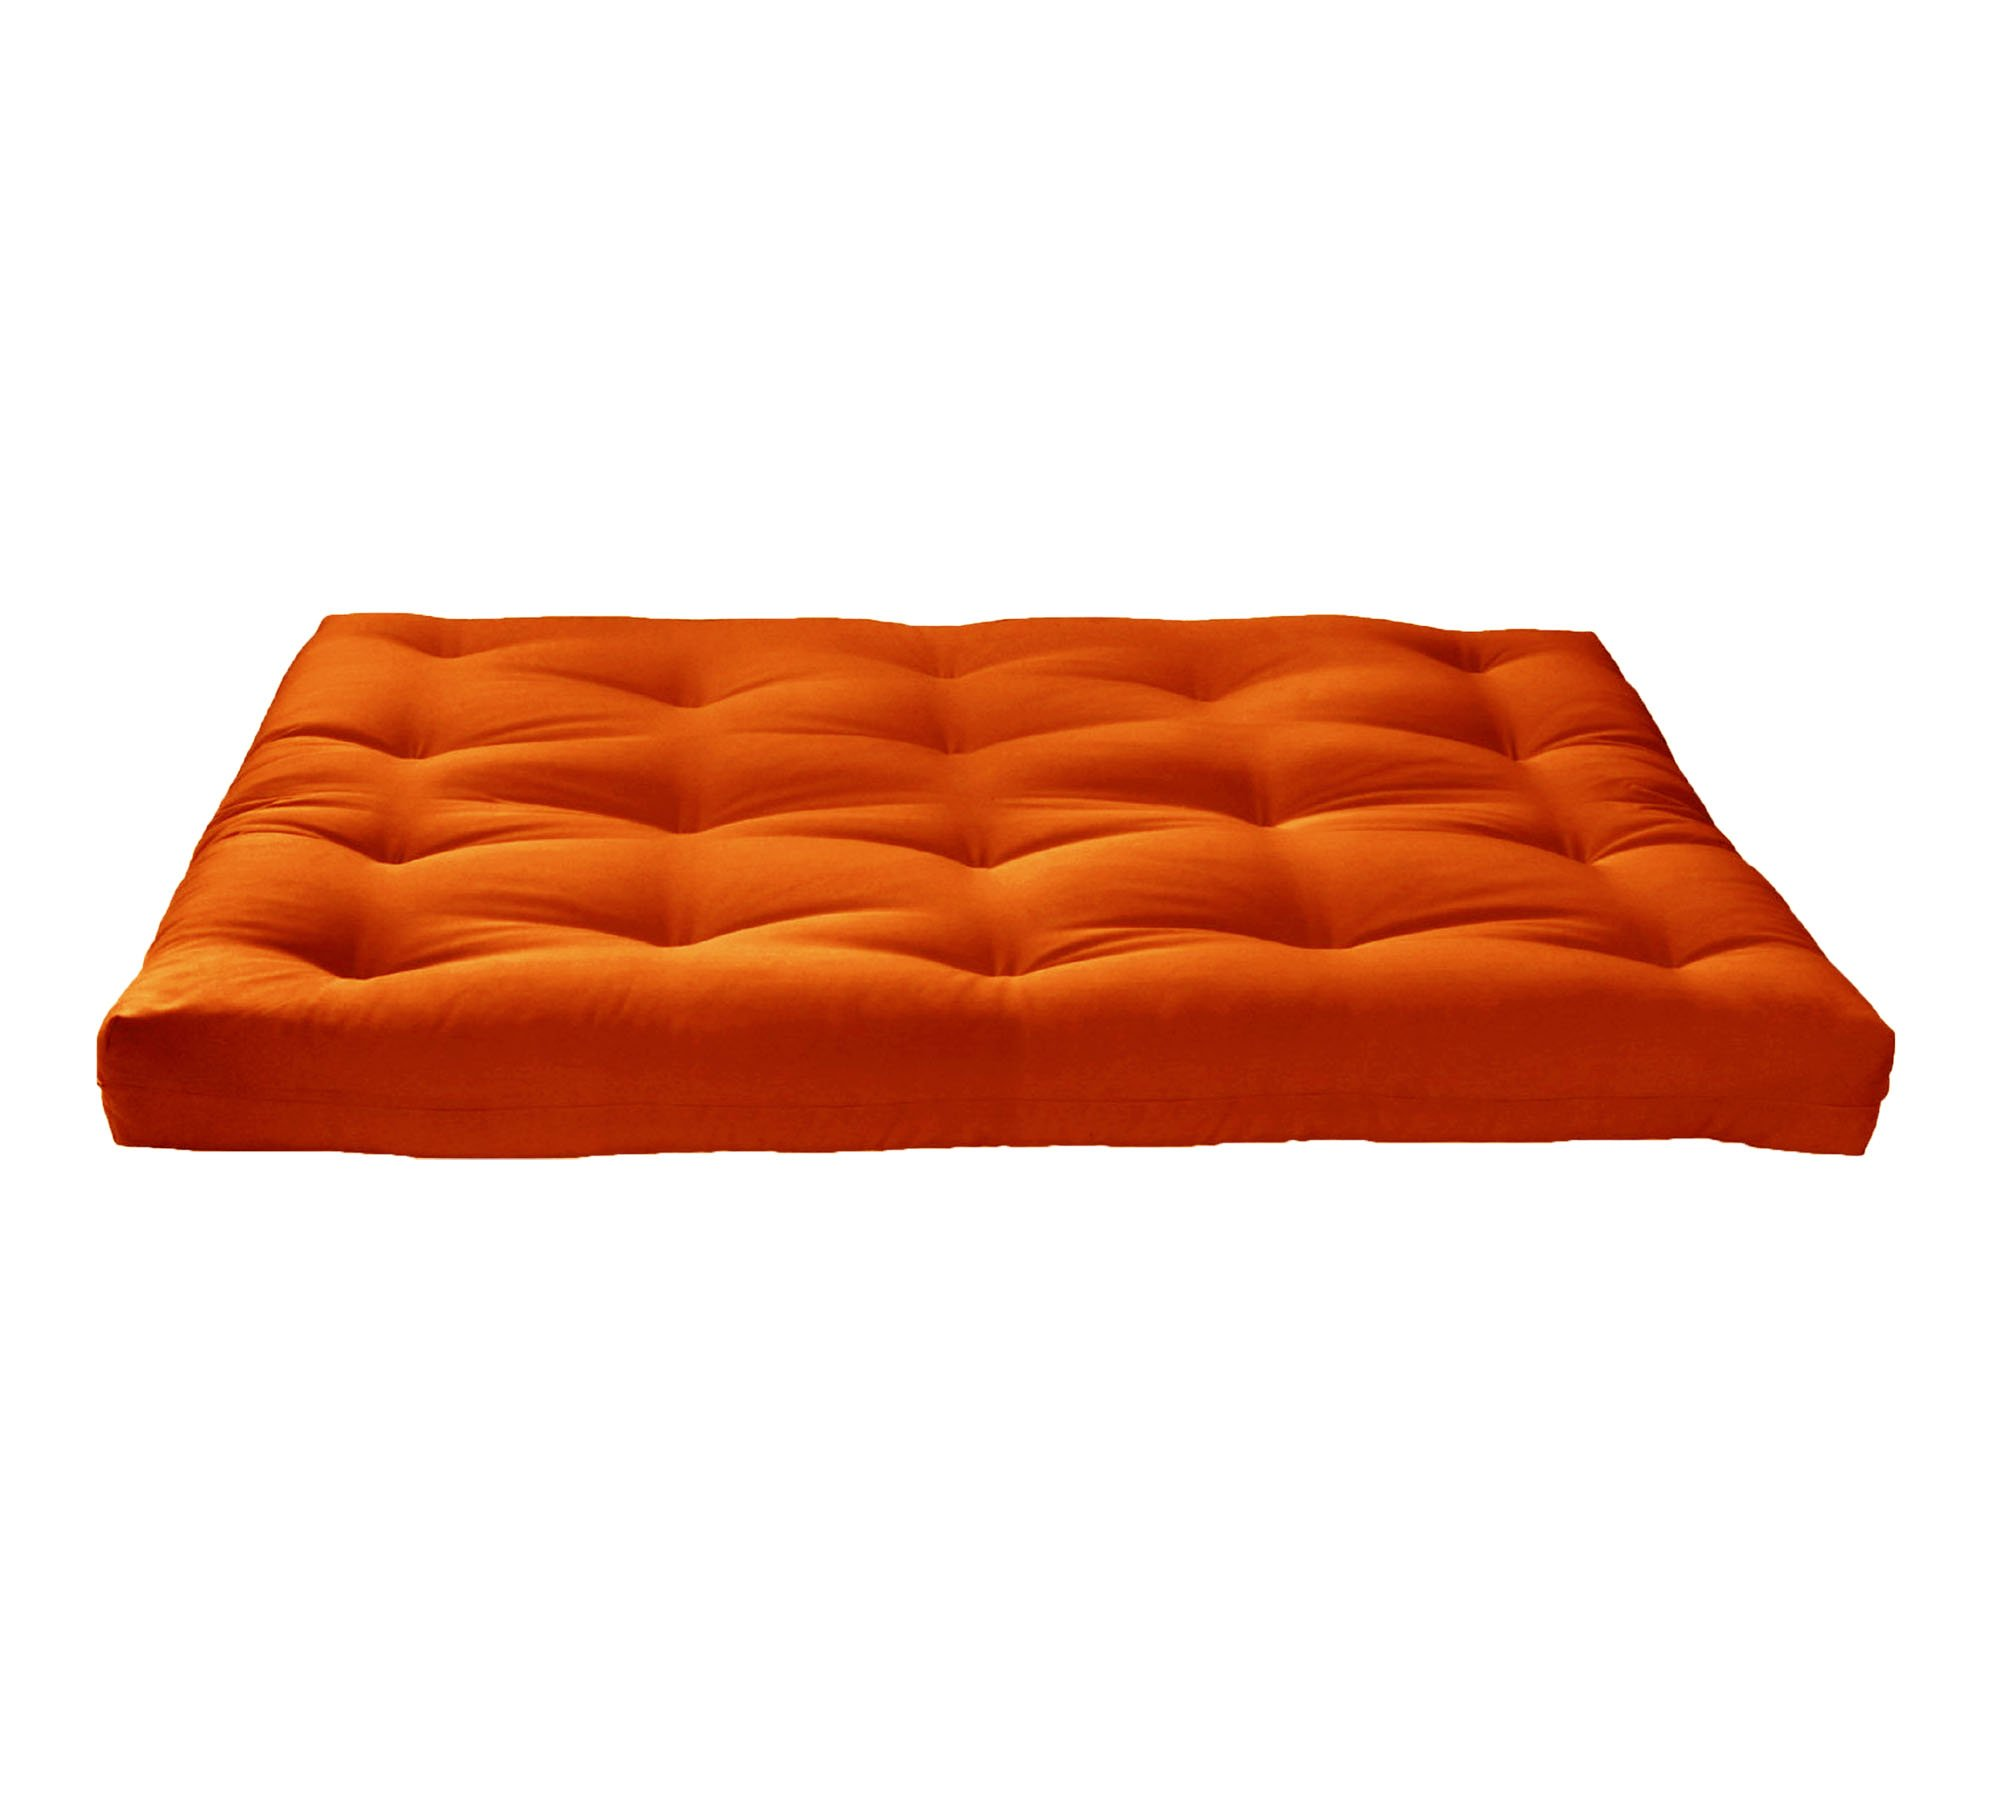 Artiva USA Home Deluxe 8'' Futon Sofa Mattress Made in US Best Quality, Solid, Full, Orange by Artiva USA